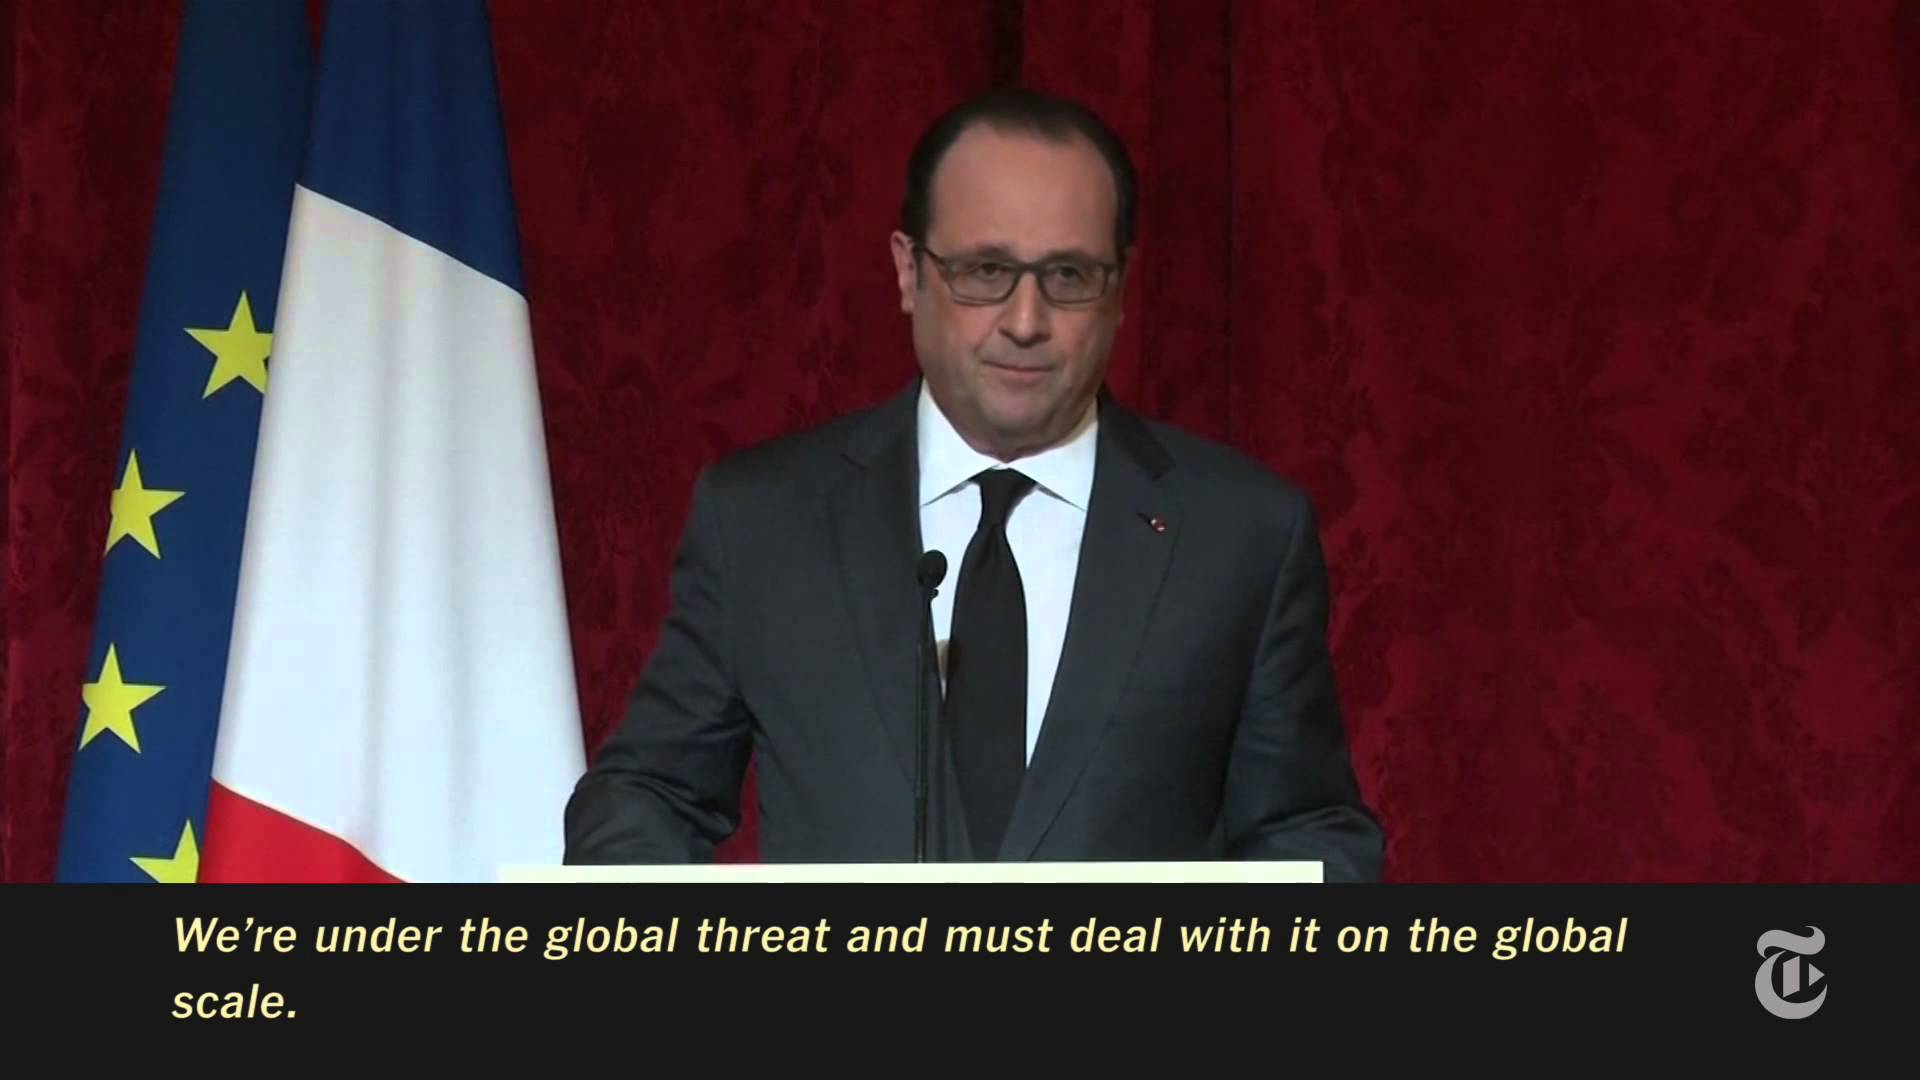 President Francois Hollande of France speaking to a group of world leaders about threats facing the West.